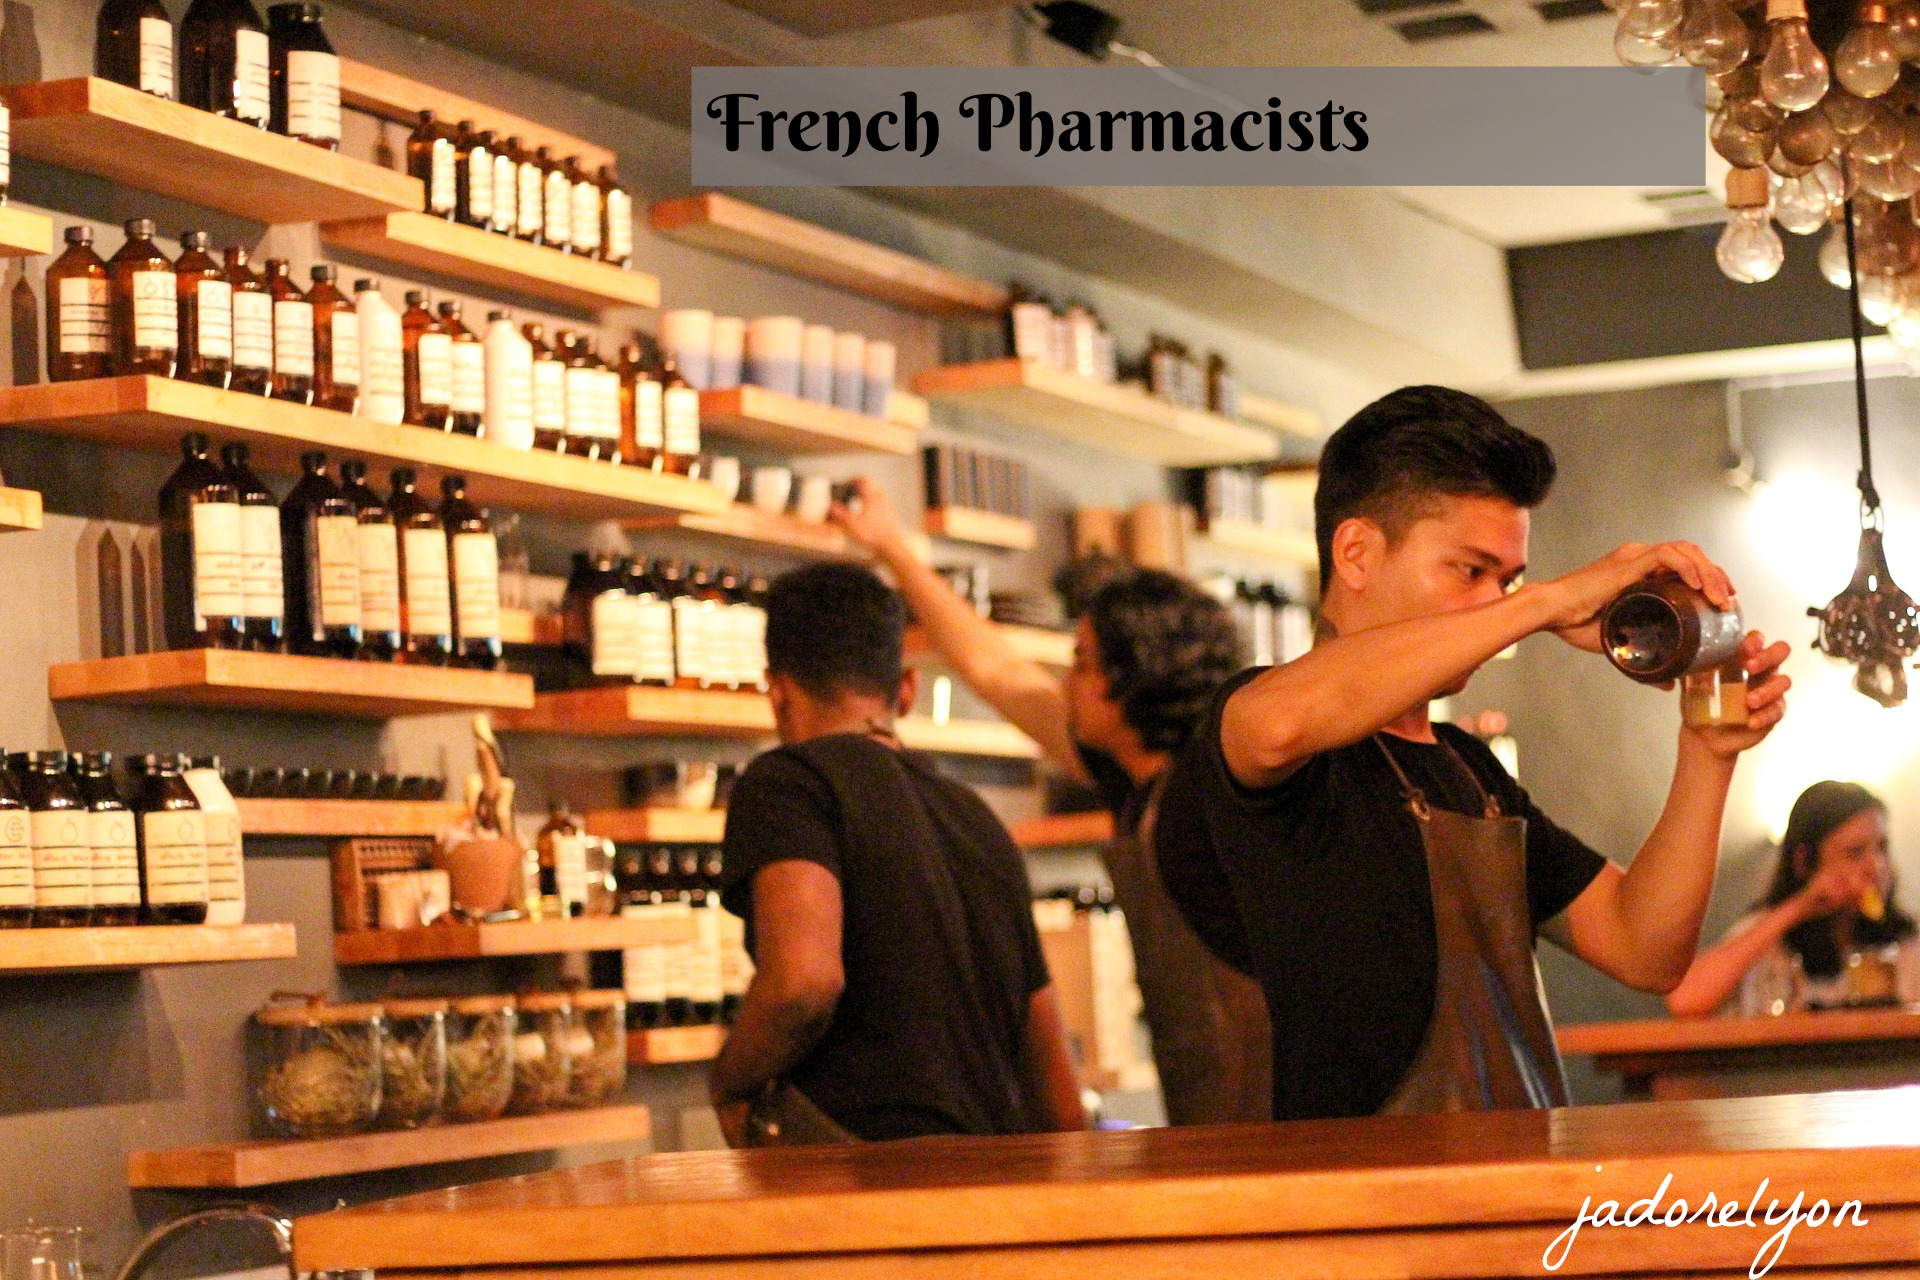 French Pharmacists